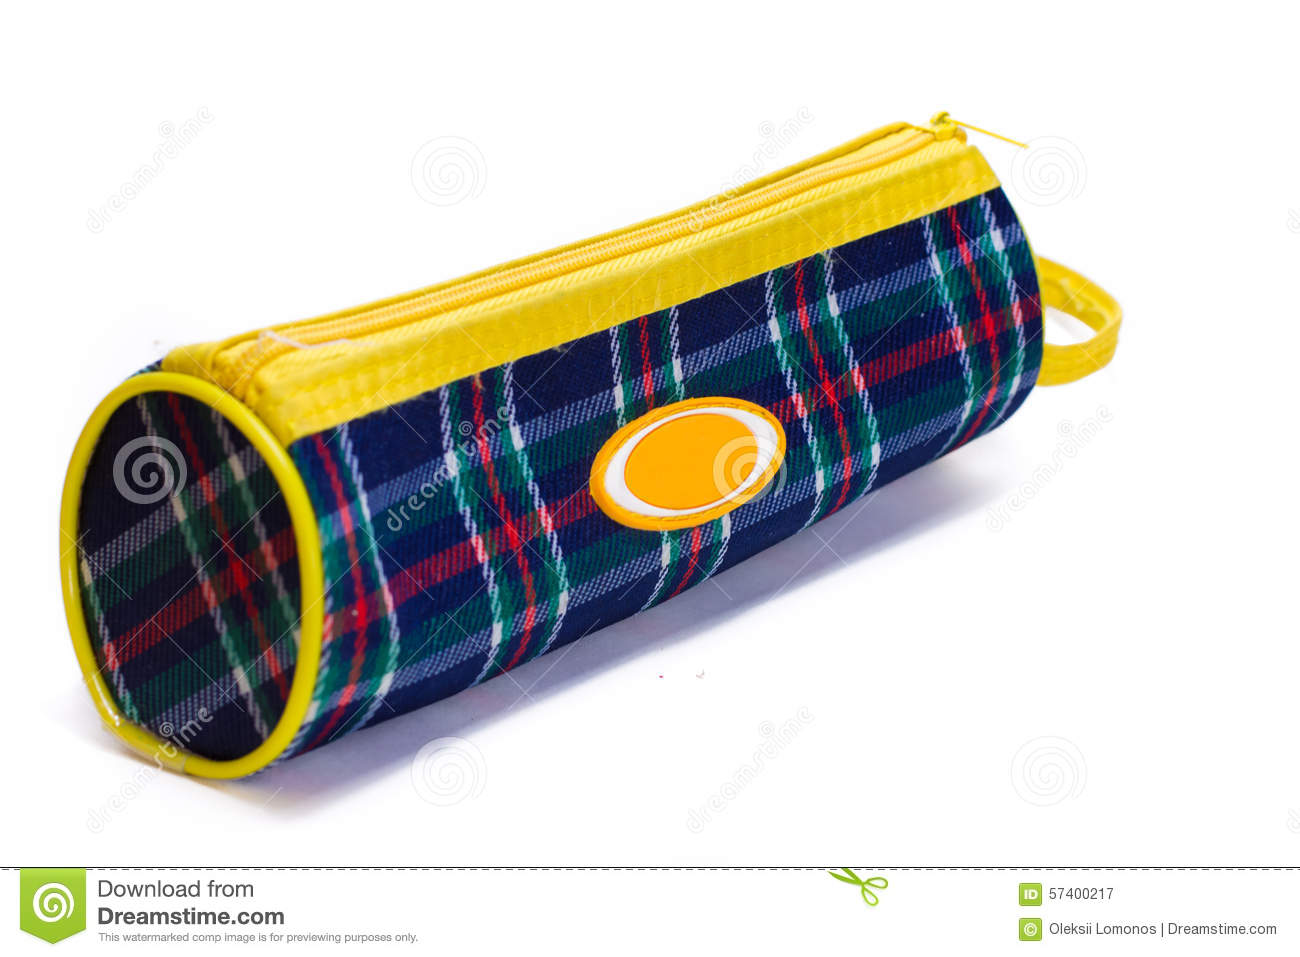 Download Bright Colorful Pencil Case Stock Image - Image of colorful, background: 57400217